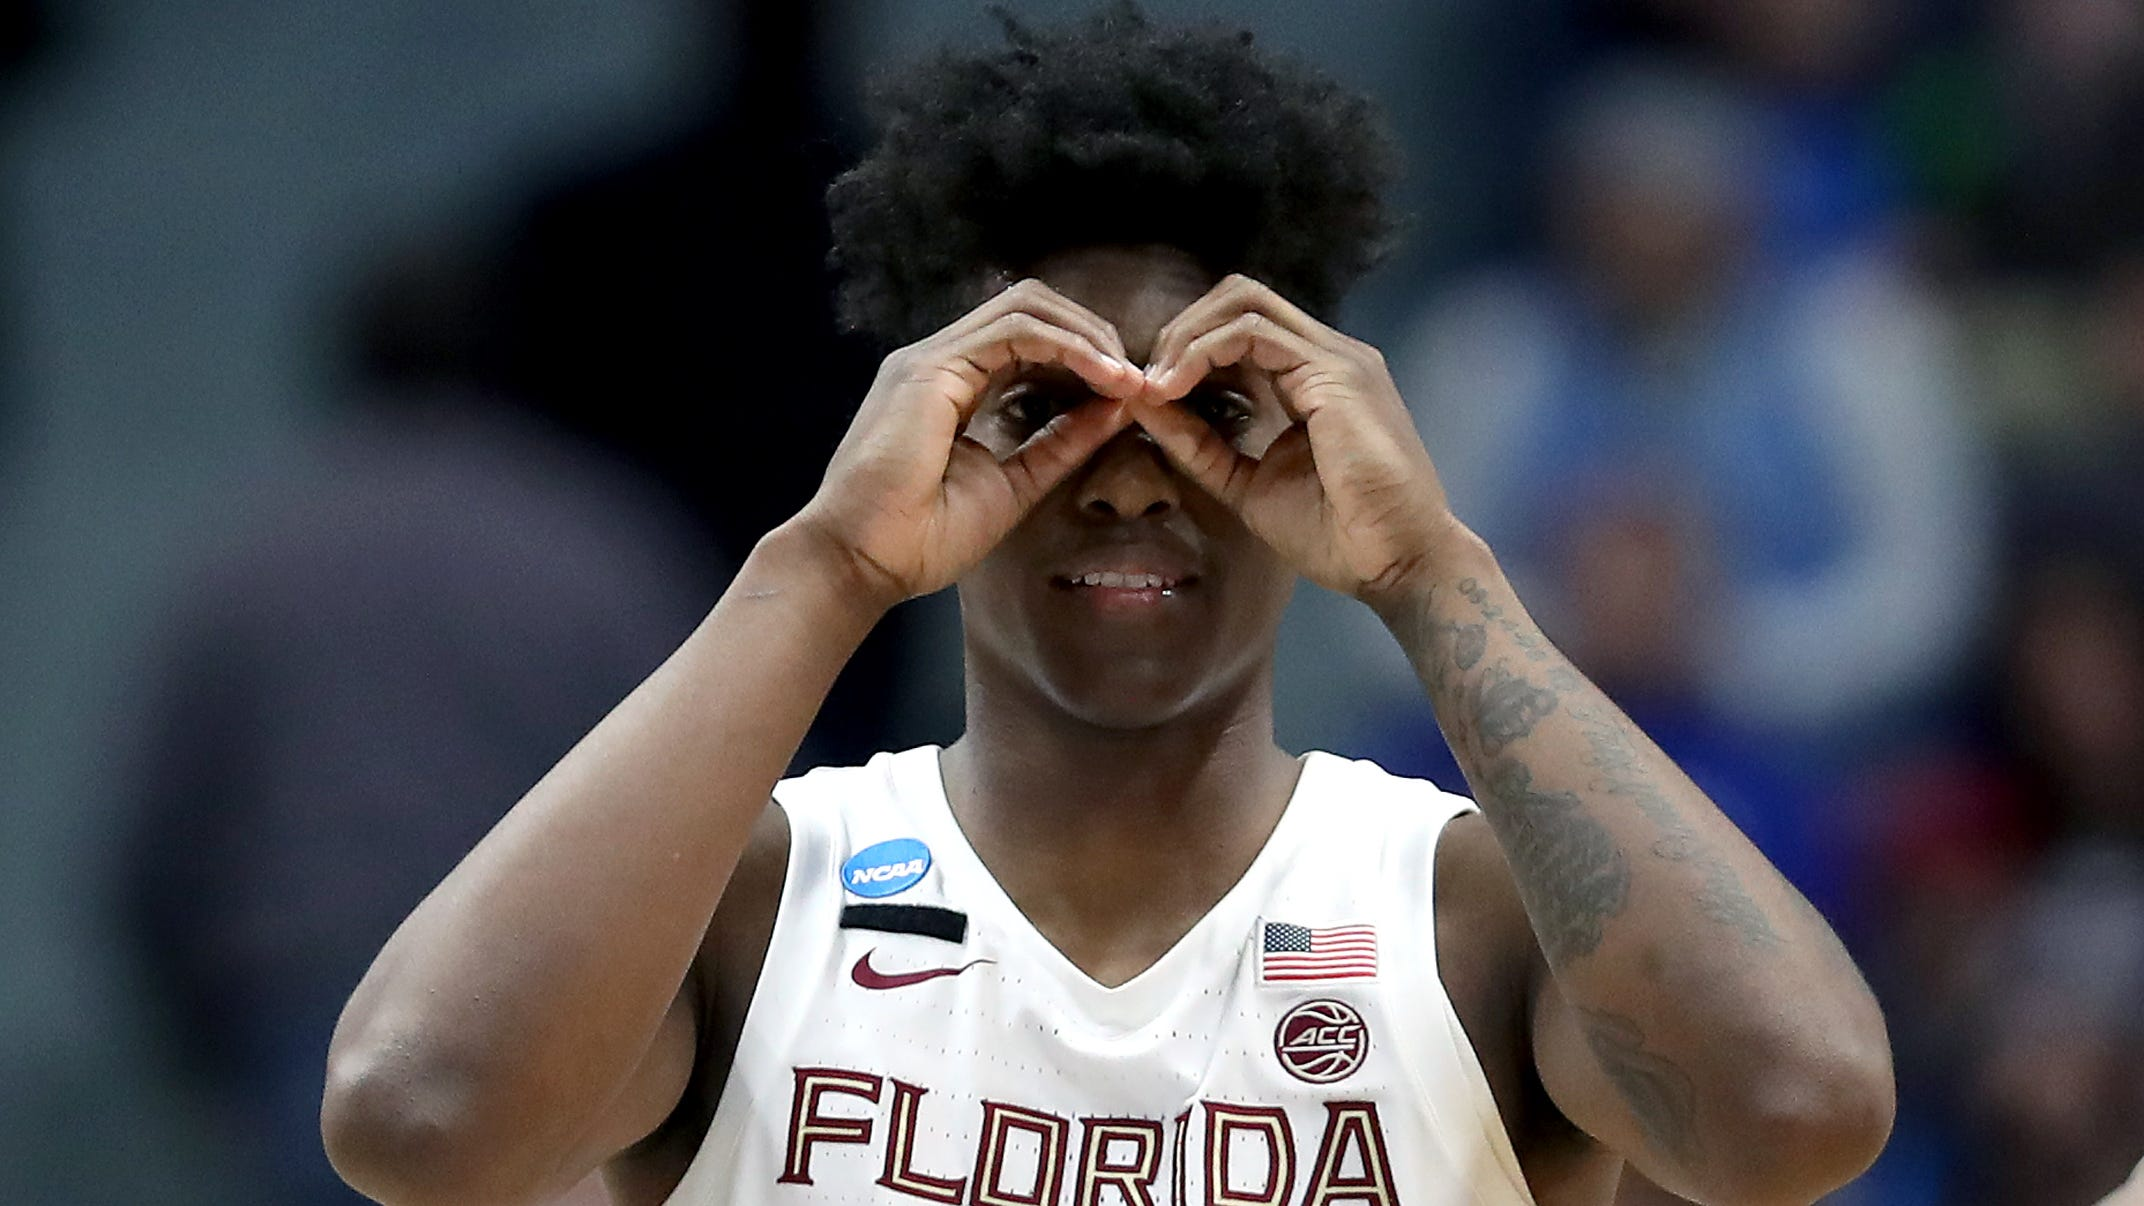 Terance Mann #14 of the Florida State Seminoles celebrates the play against the Murray State Racers in the second half during the second round of the 2019 NCAA Men's Basketball Tournament at XL Center on March 23, 2019 in Hartford, Connecticut.